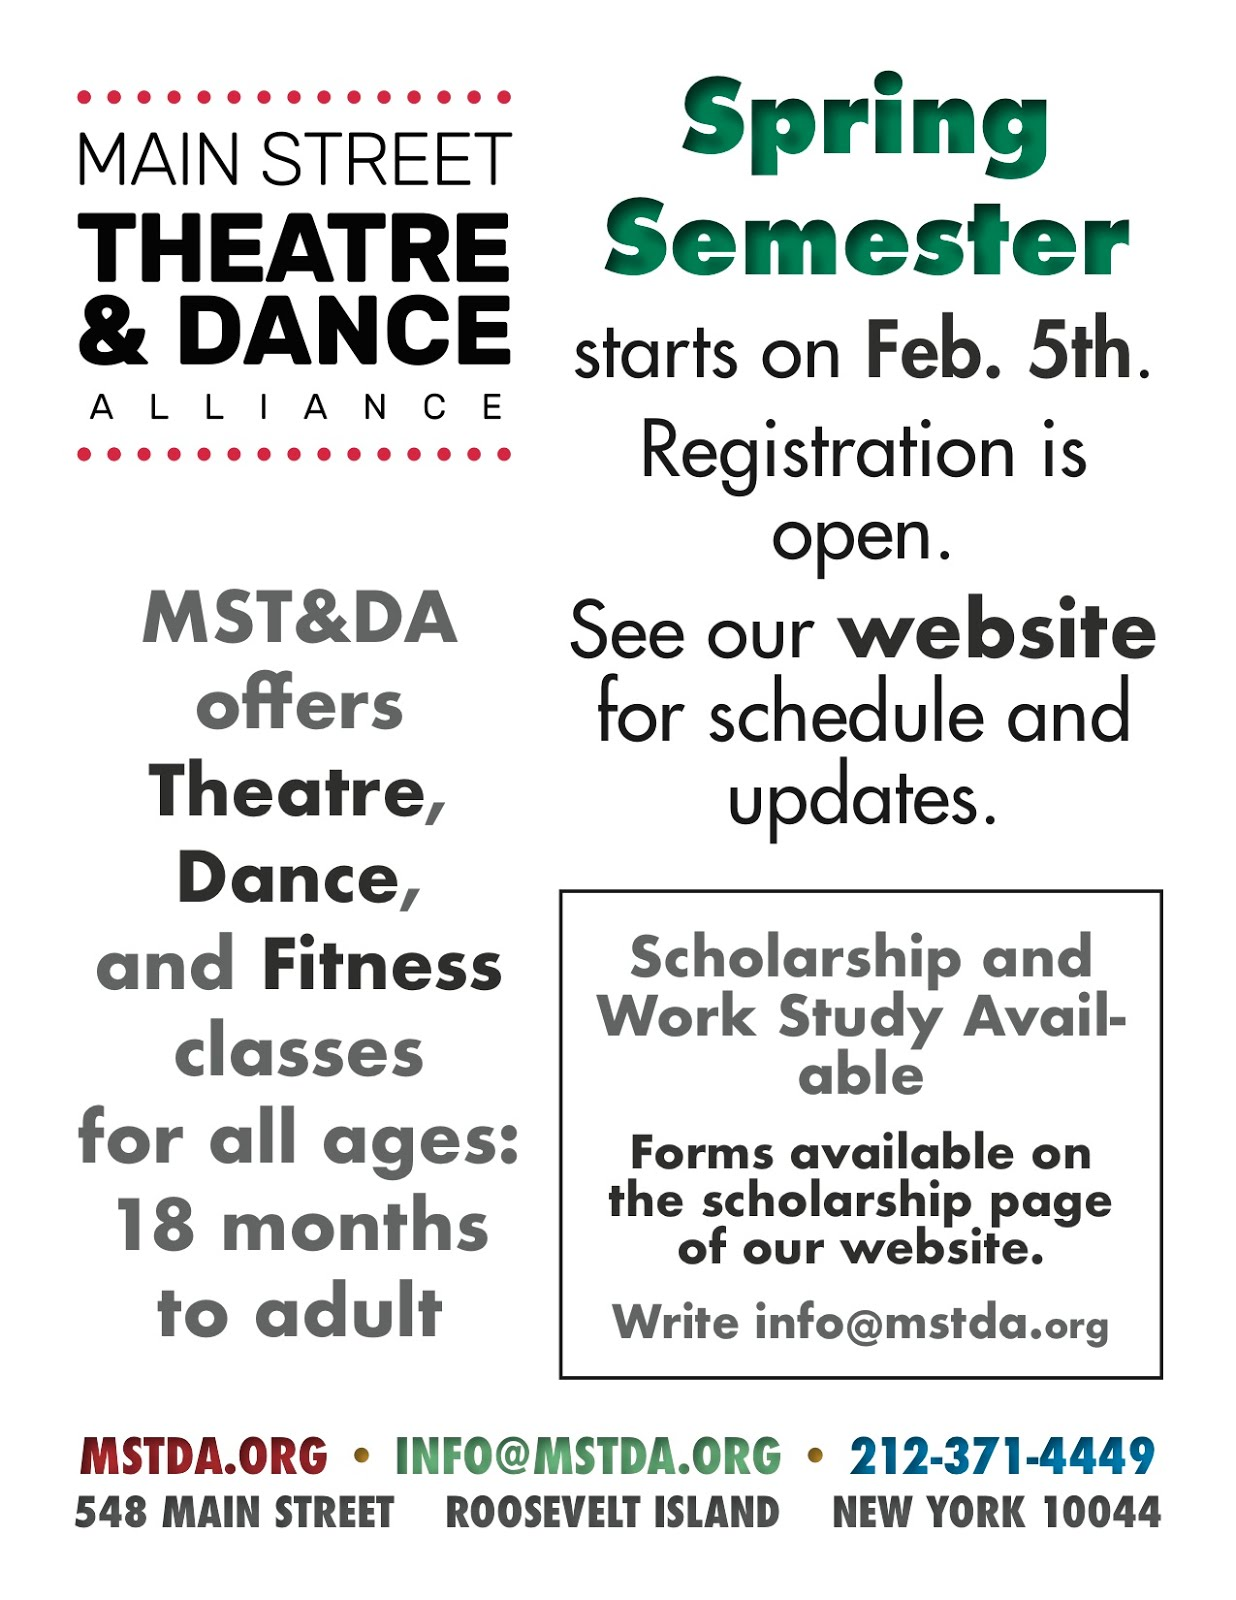 Main Street Theatre & Dance Alliance Spring Semester